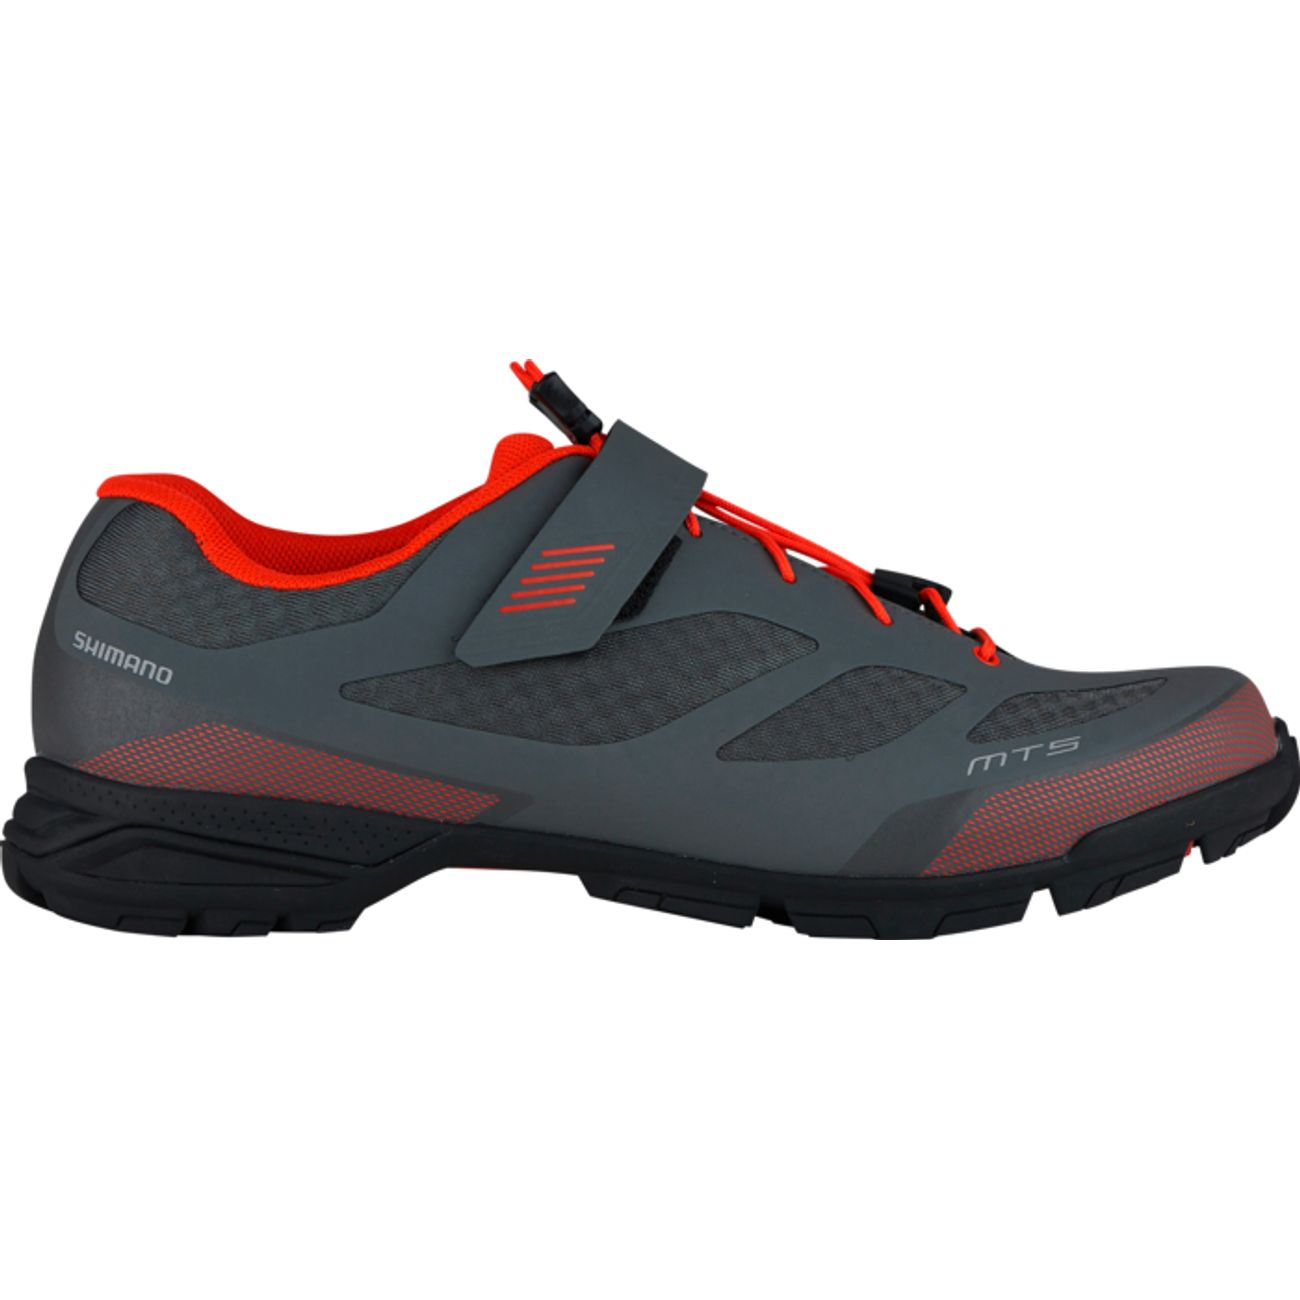 CHAUSSURES BASSES VTT homme SHIMANO MT501